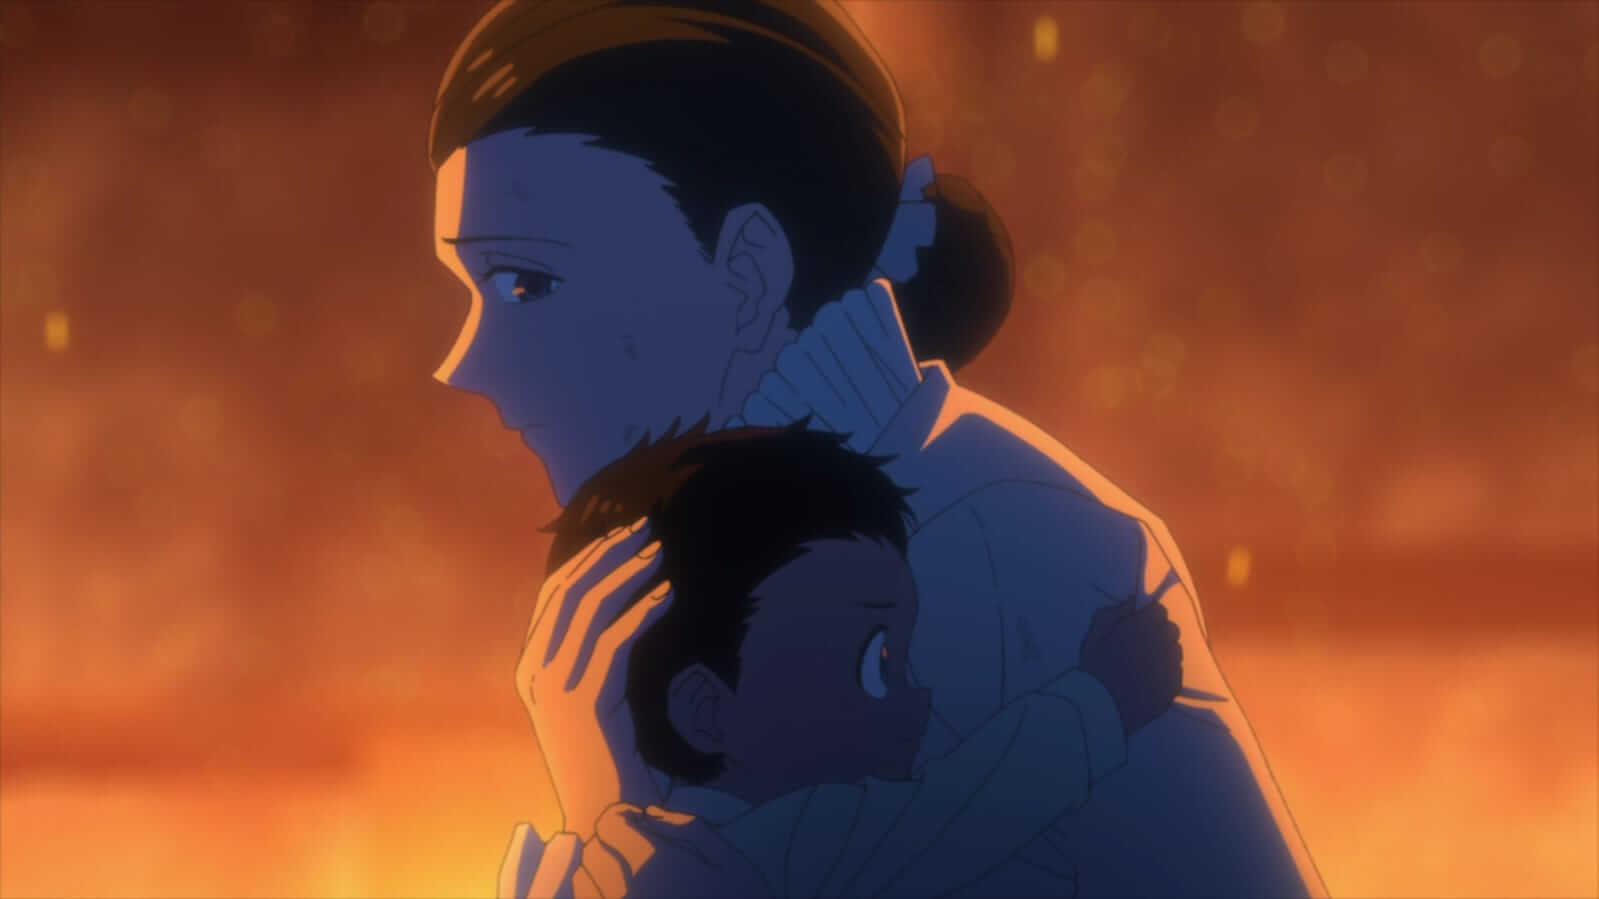 The Promised Neverland análisis episodio 12 redención